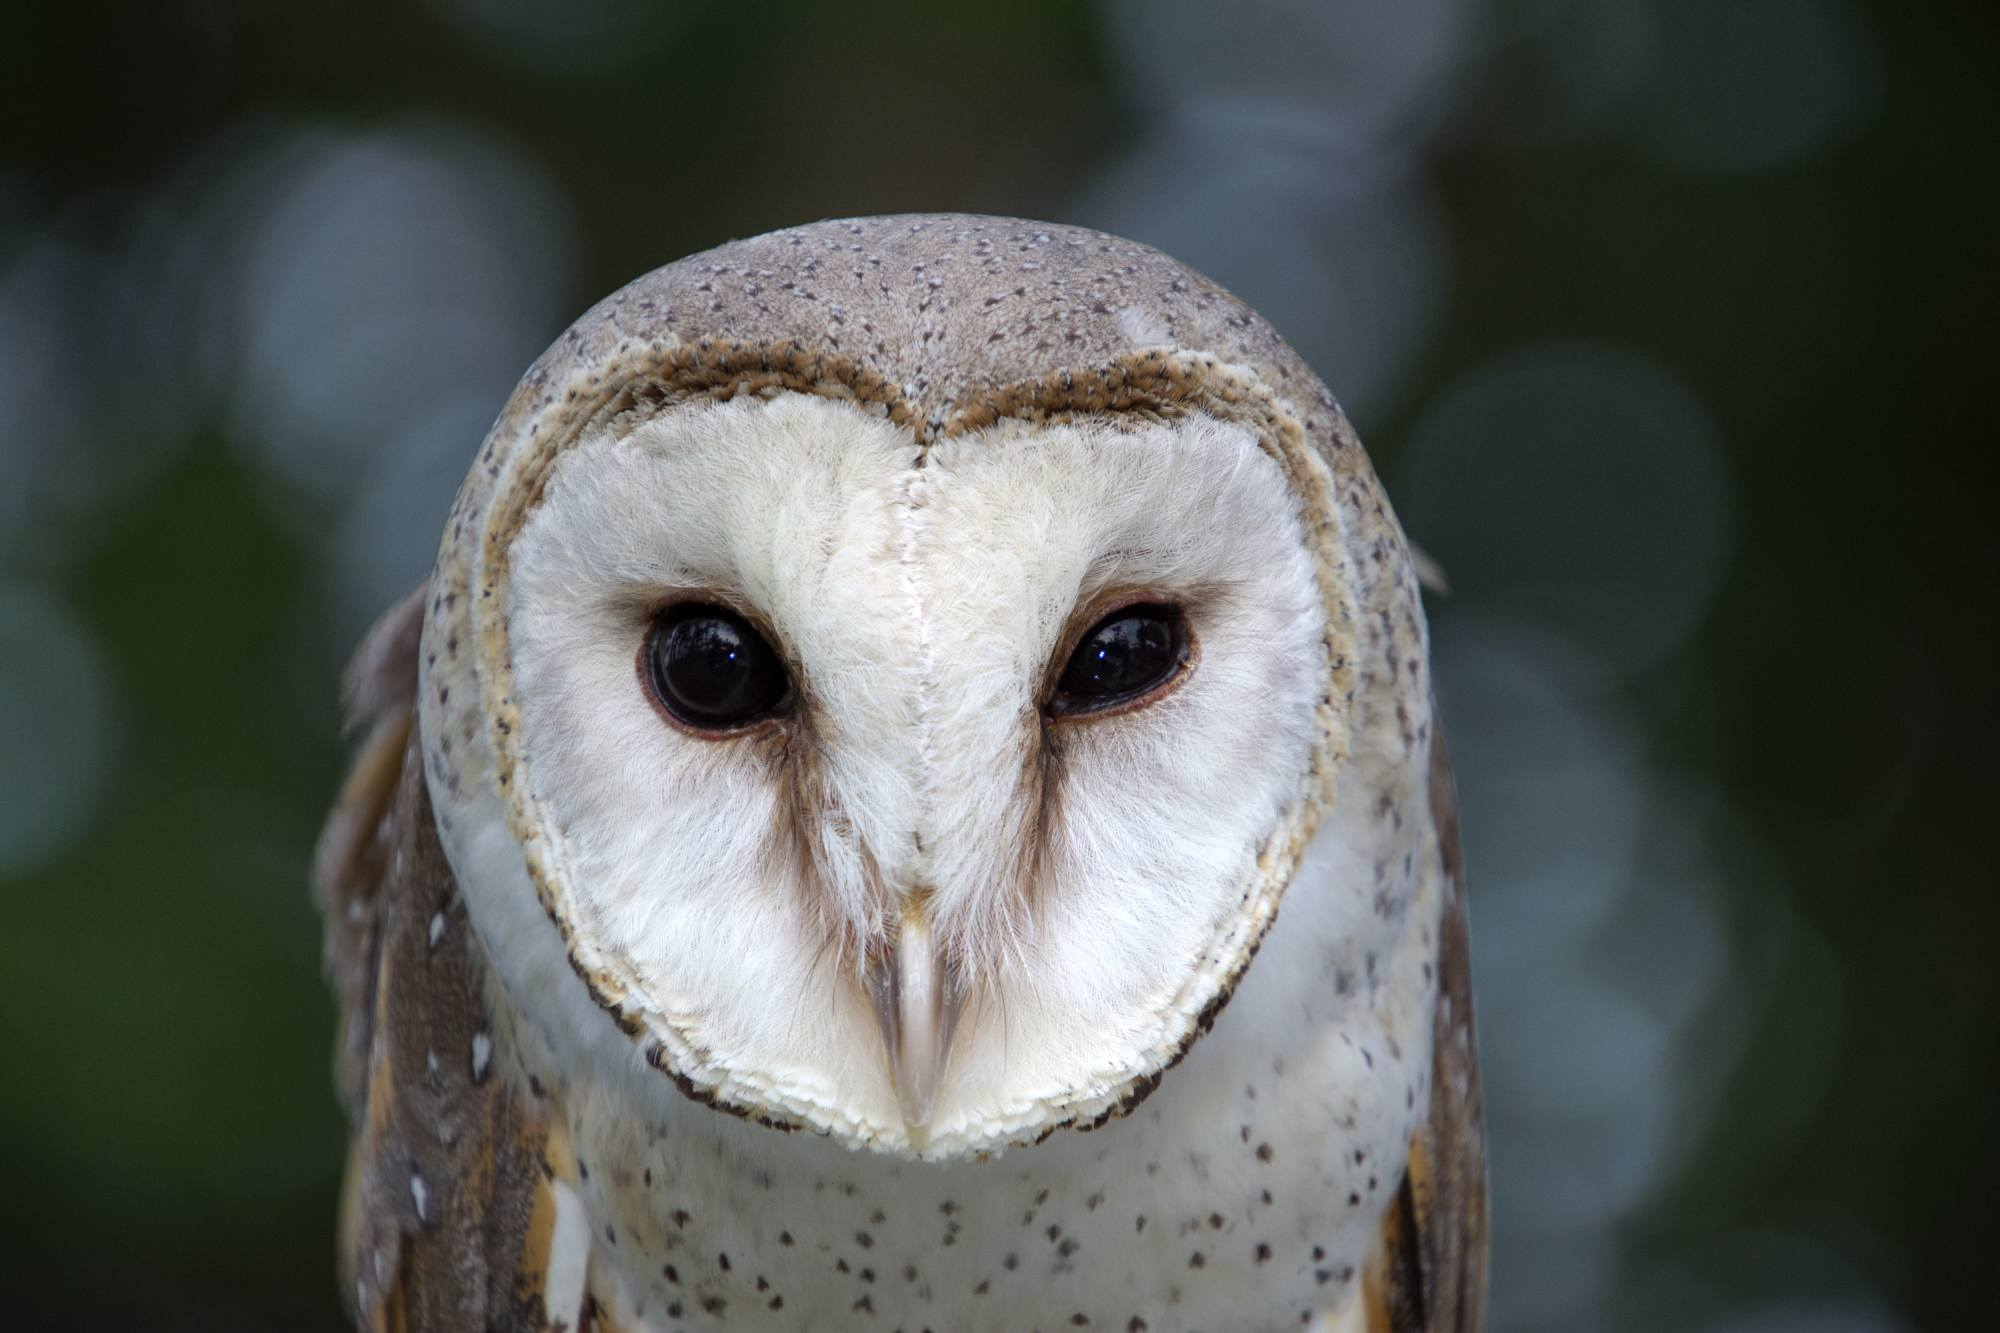 Close-up of barn owl's face, photographed with the Tamron 18-400mm f/3.5-6.3 Di II VC HLD lens for Nikon